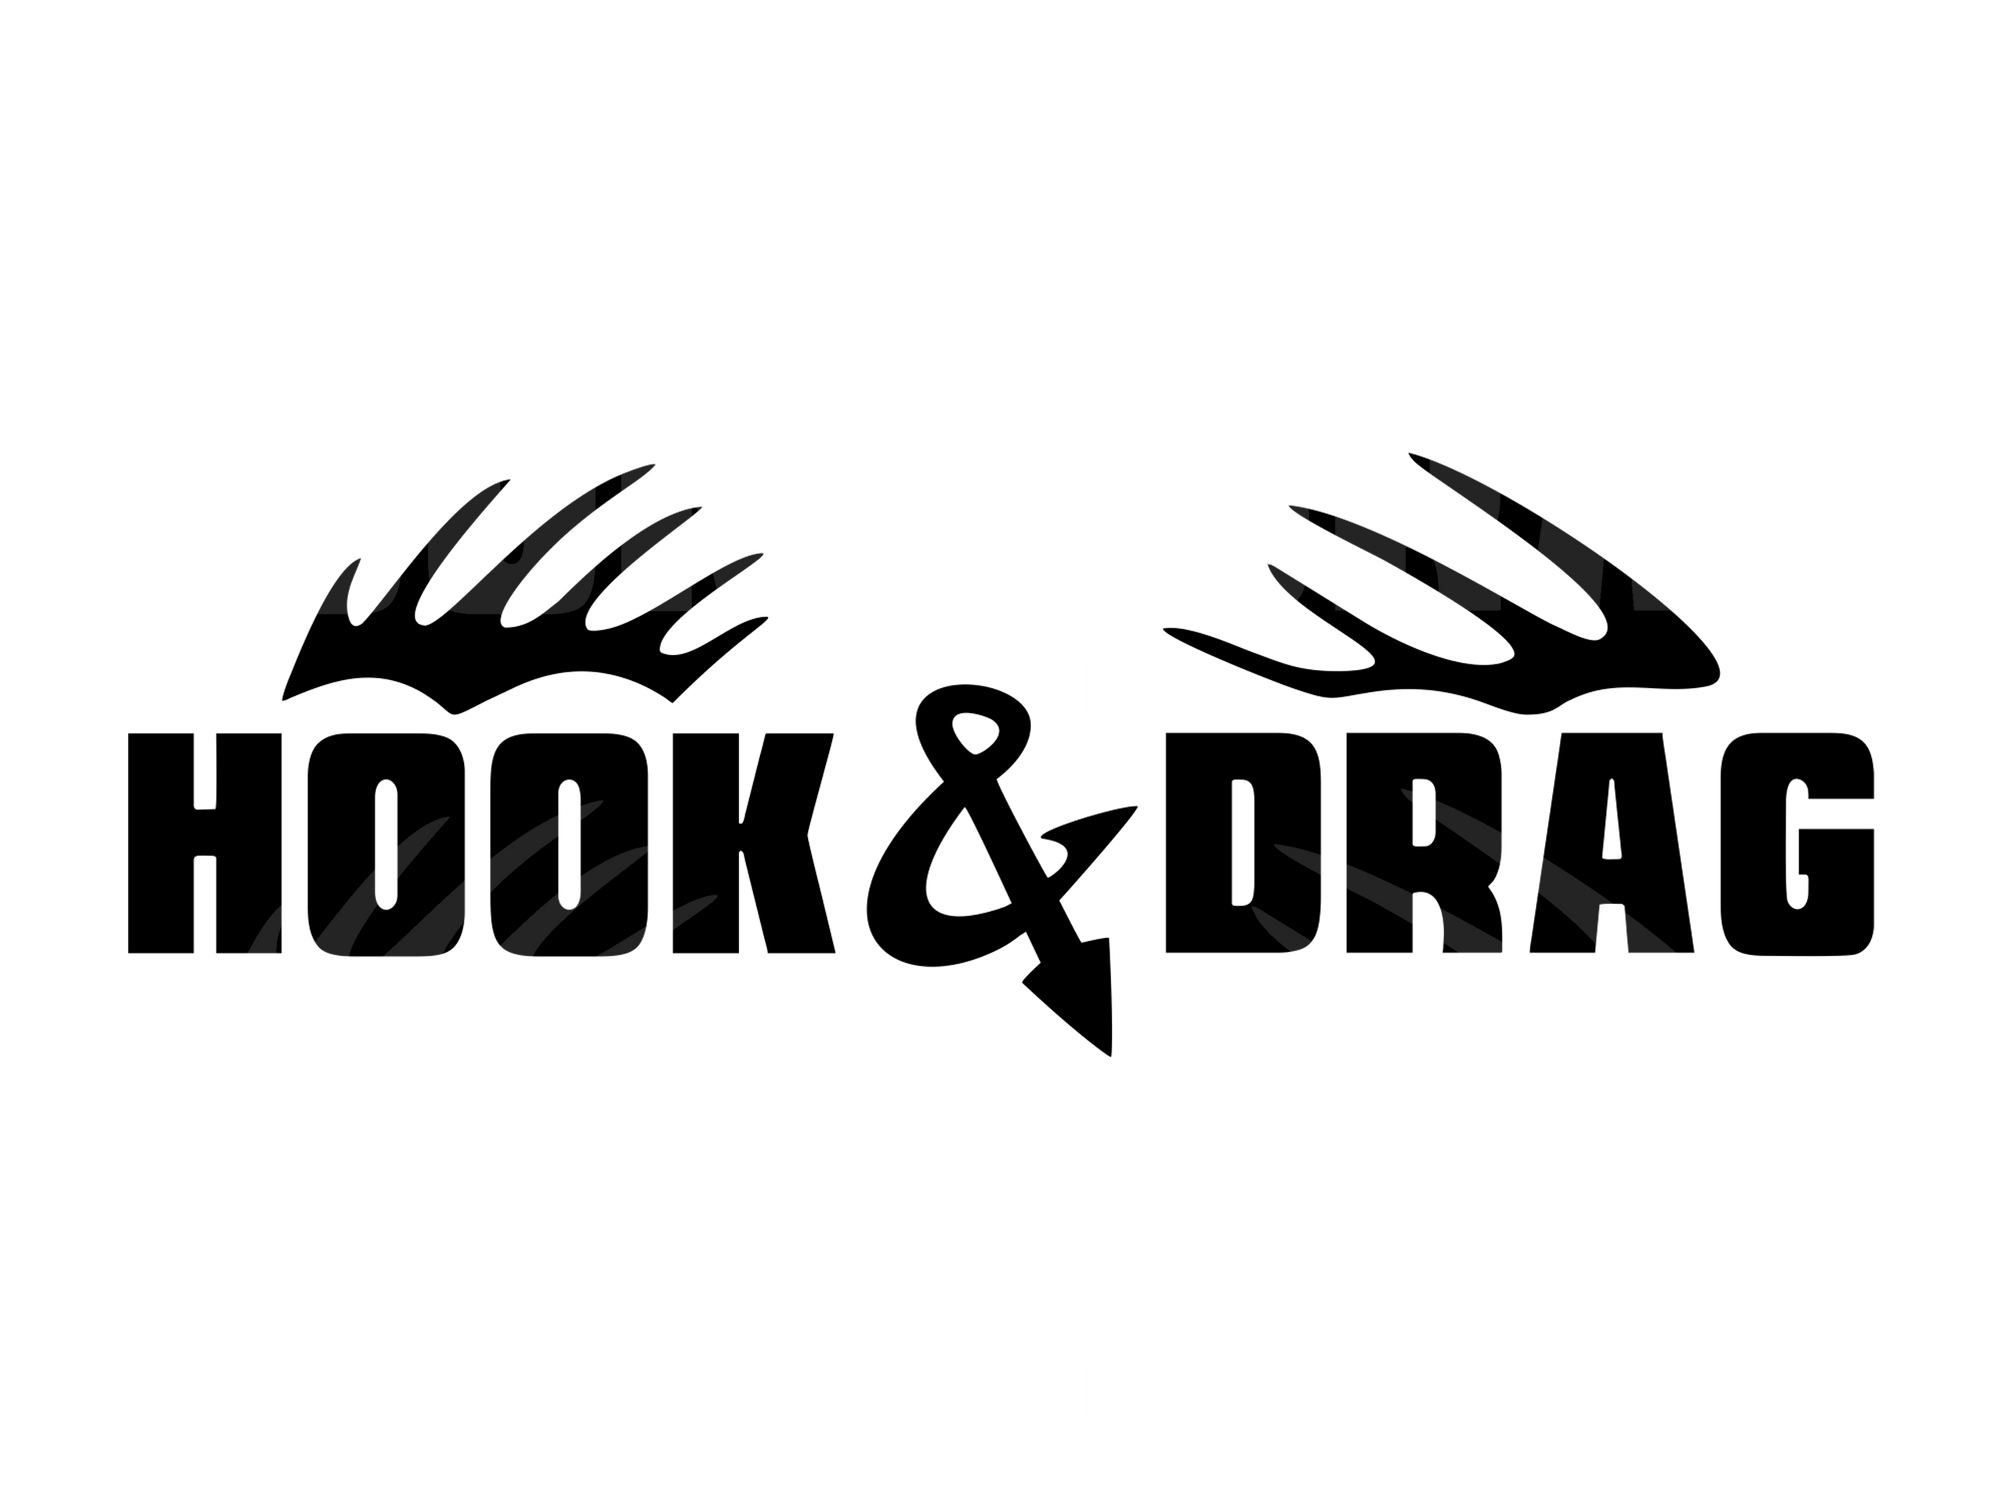 Hook & Drag 6x2 Decal  - Black